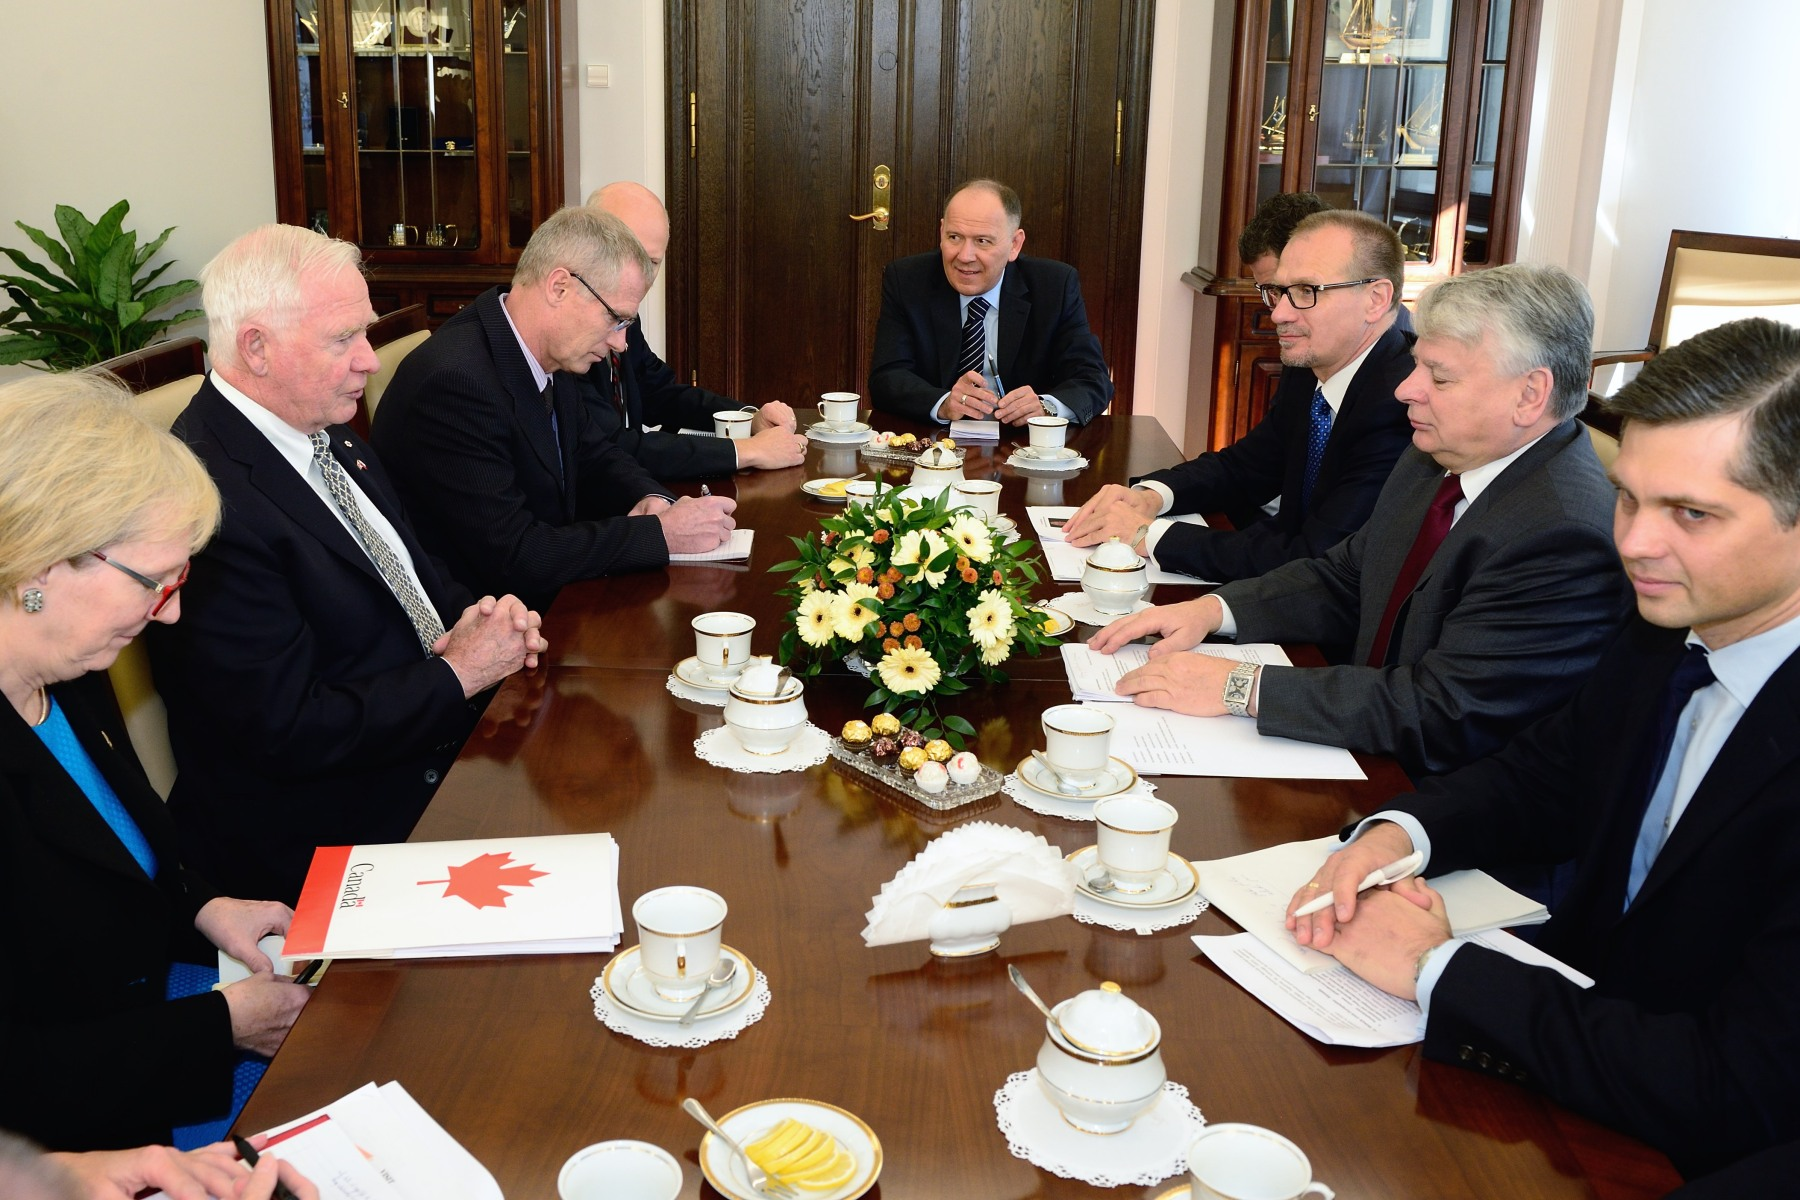 His Excellency the Right Honourable David Johnston, Governor General of Canada, and Canadian delegates met with Bogdan Borusewicz, Marshal of the Senate, to discuss bilateral Canada-Poland relations and people-to-people ties on October 24, 2014.